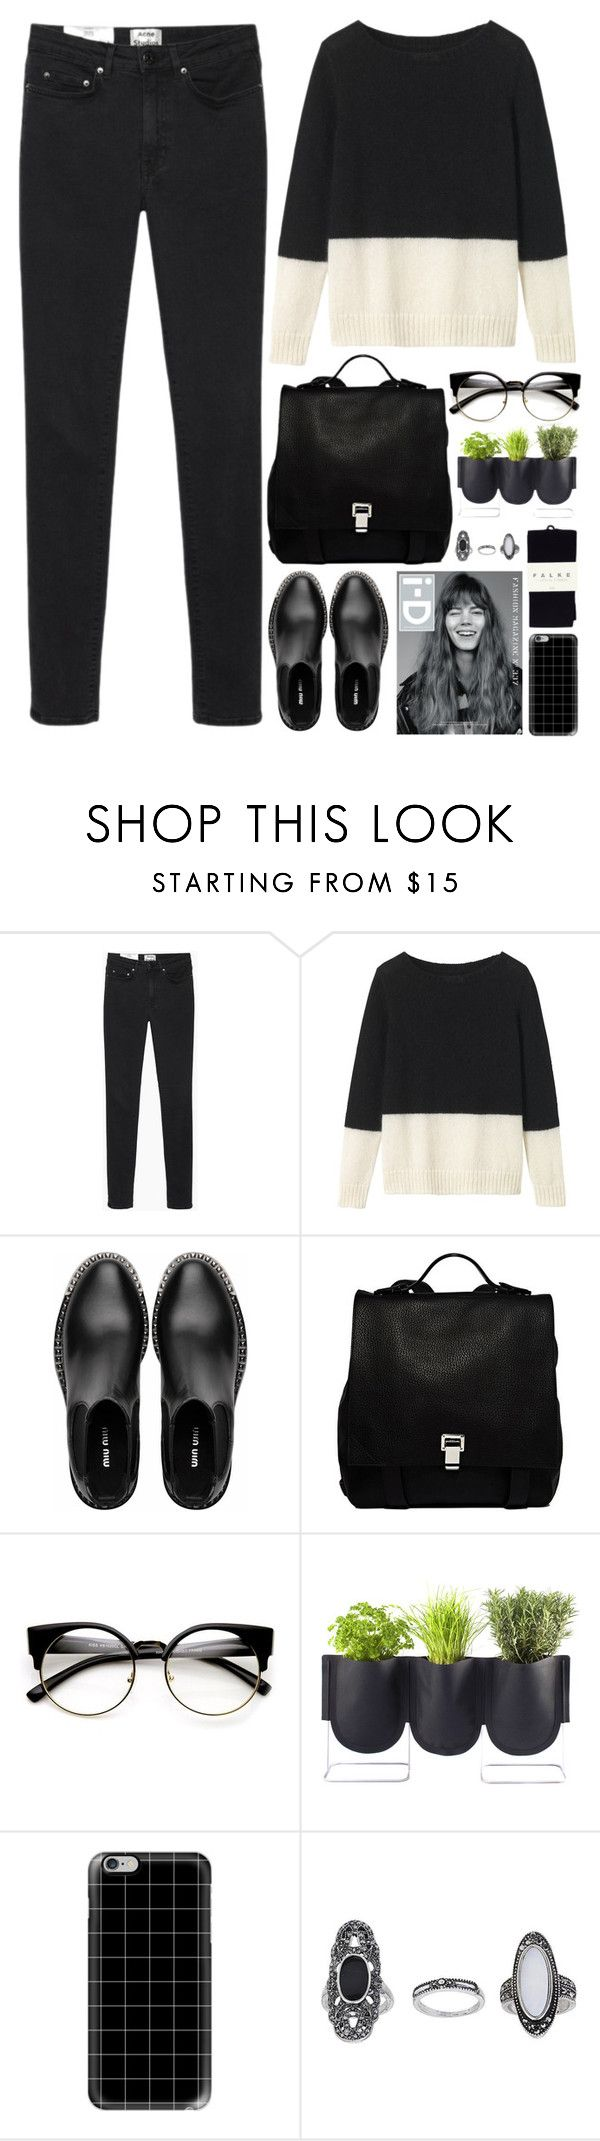 """Dog Days Are Over"" by annaclaraalvez ❤ liked on Polyvore featuring Acne Studios, Toast, Miu Miu, Proenza Schouler, Authentics, Casetify, Topshop and Falke"